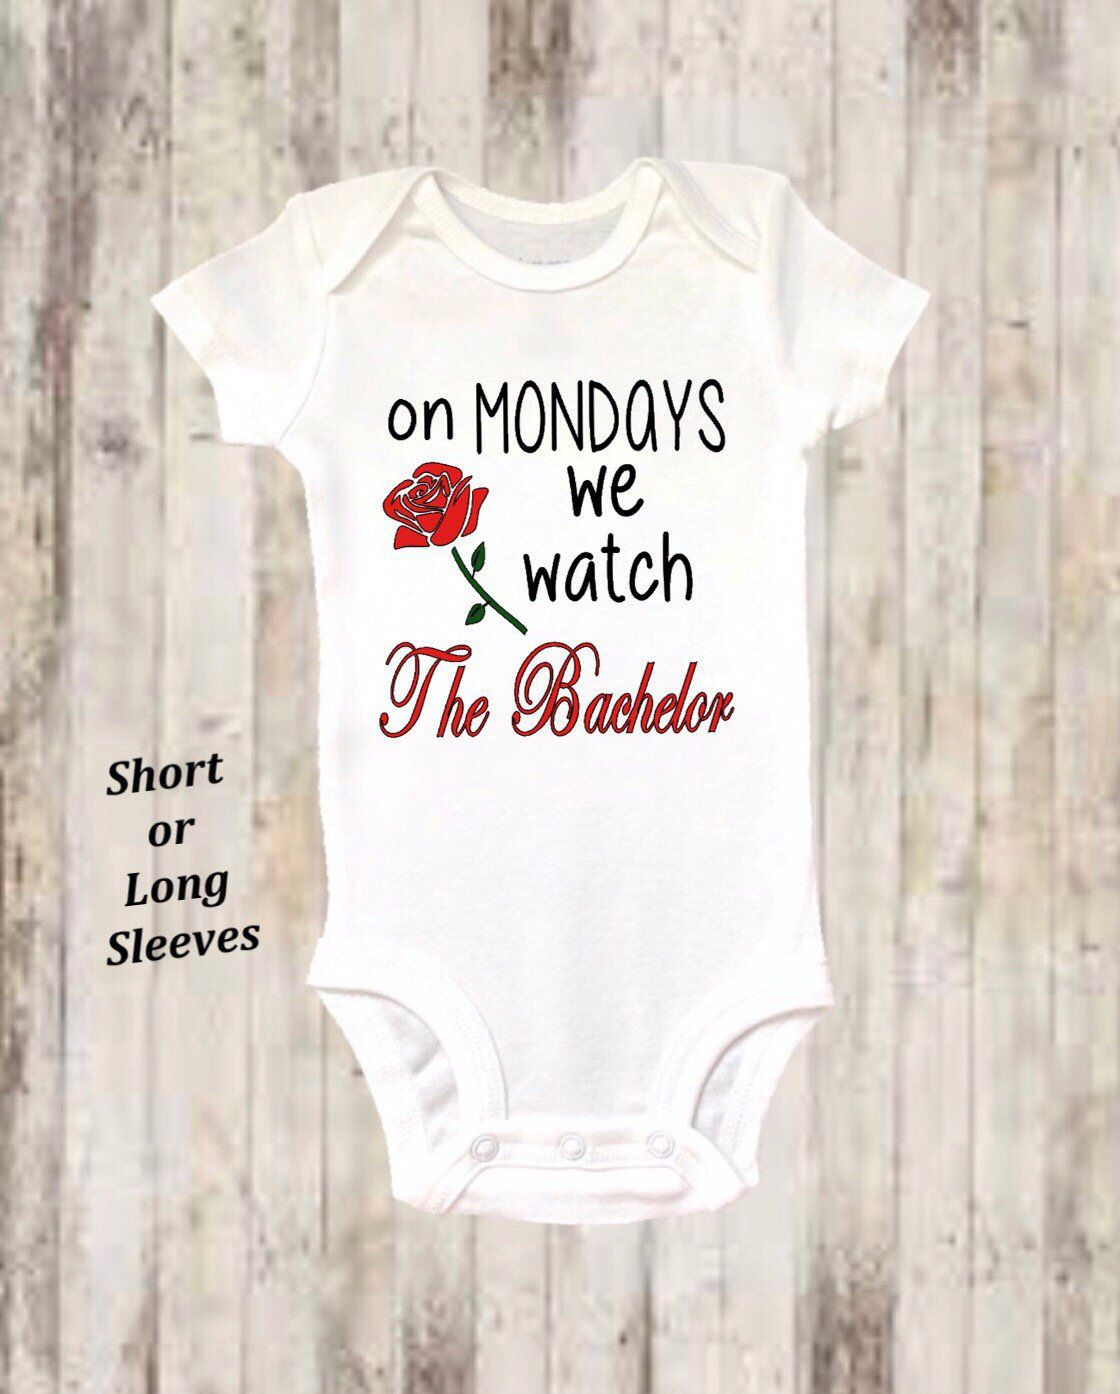 e44821541 Baby Onesie ®, The Bachelor, On Mondays we Watch The Bachelor, Funny ...